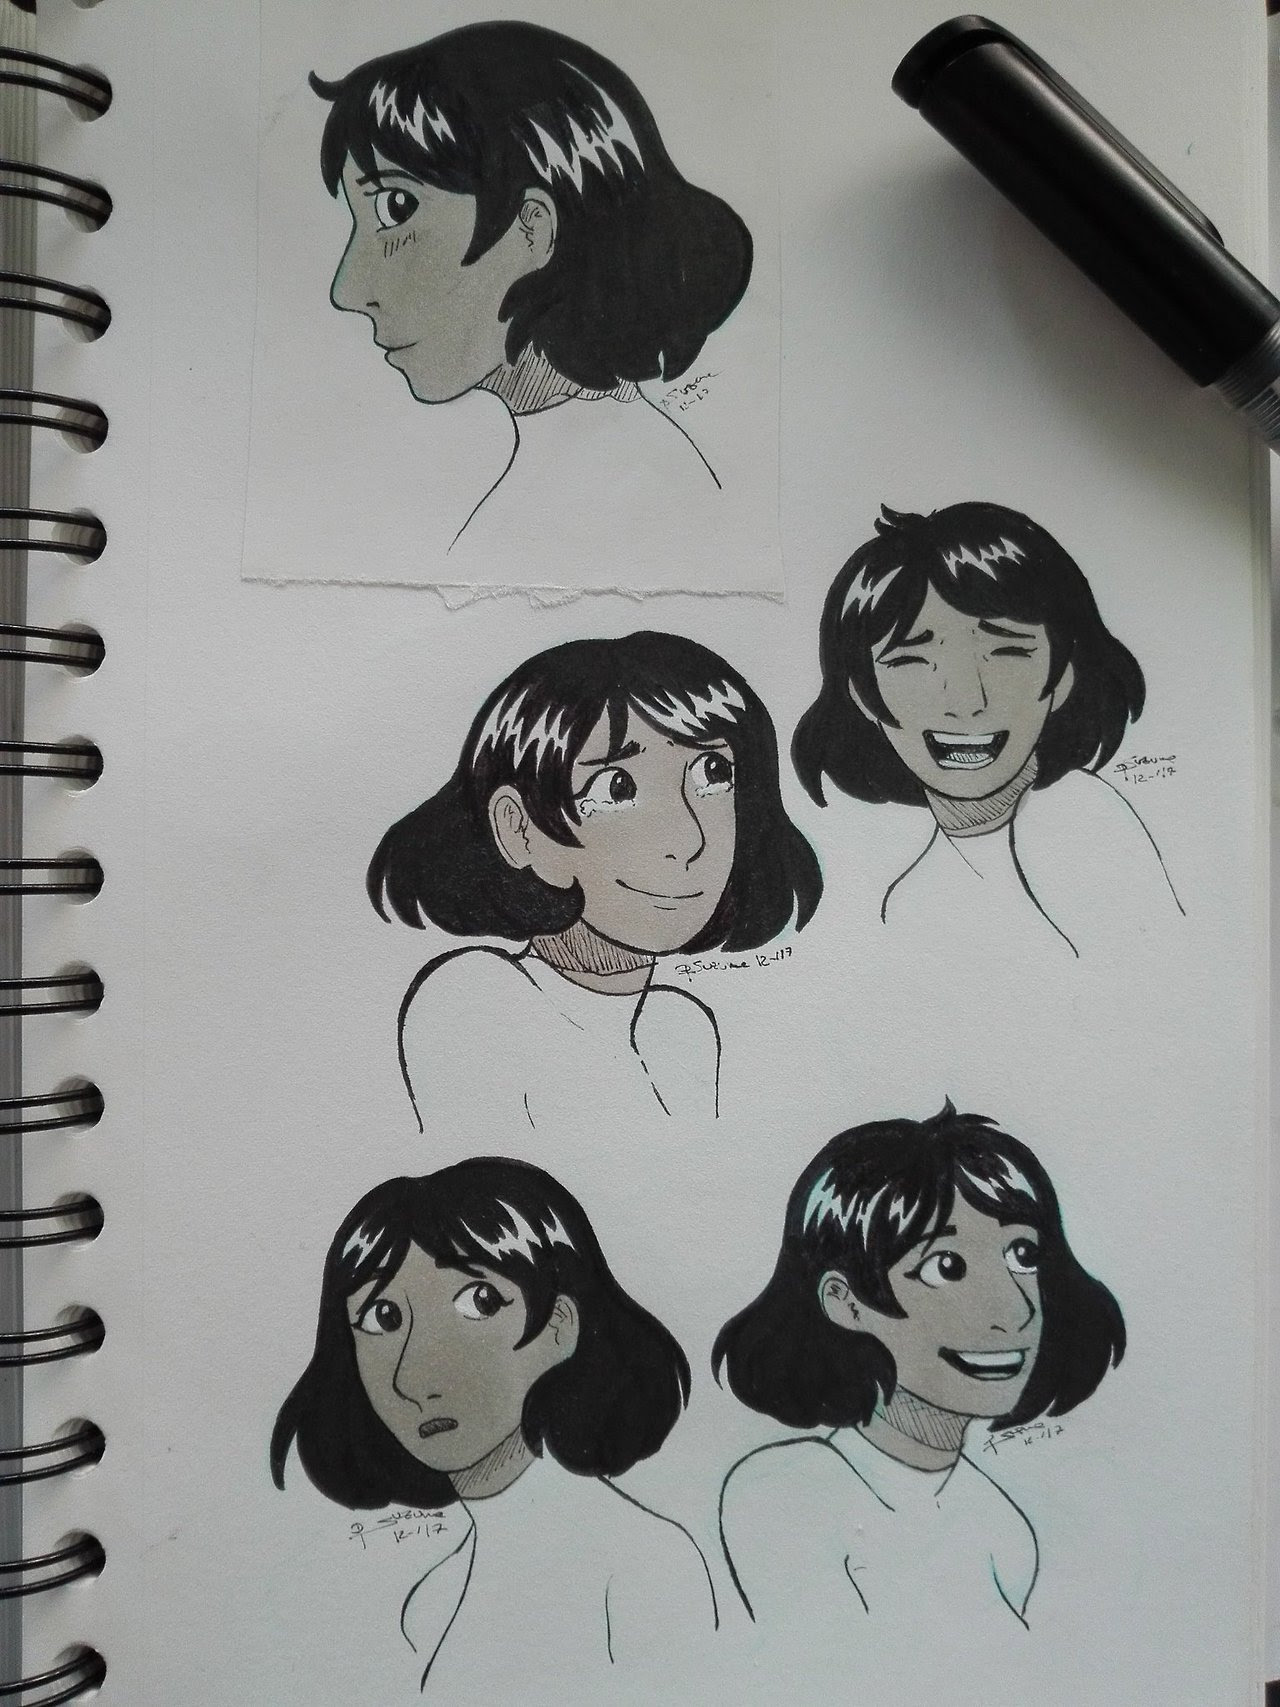 I totally love Connie's new haircut